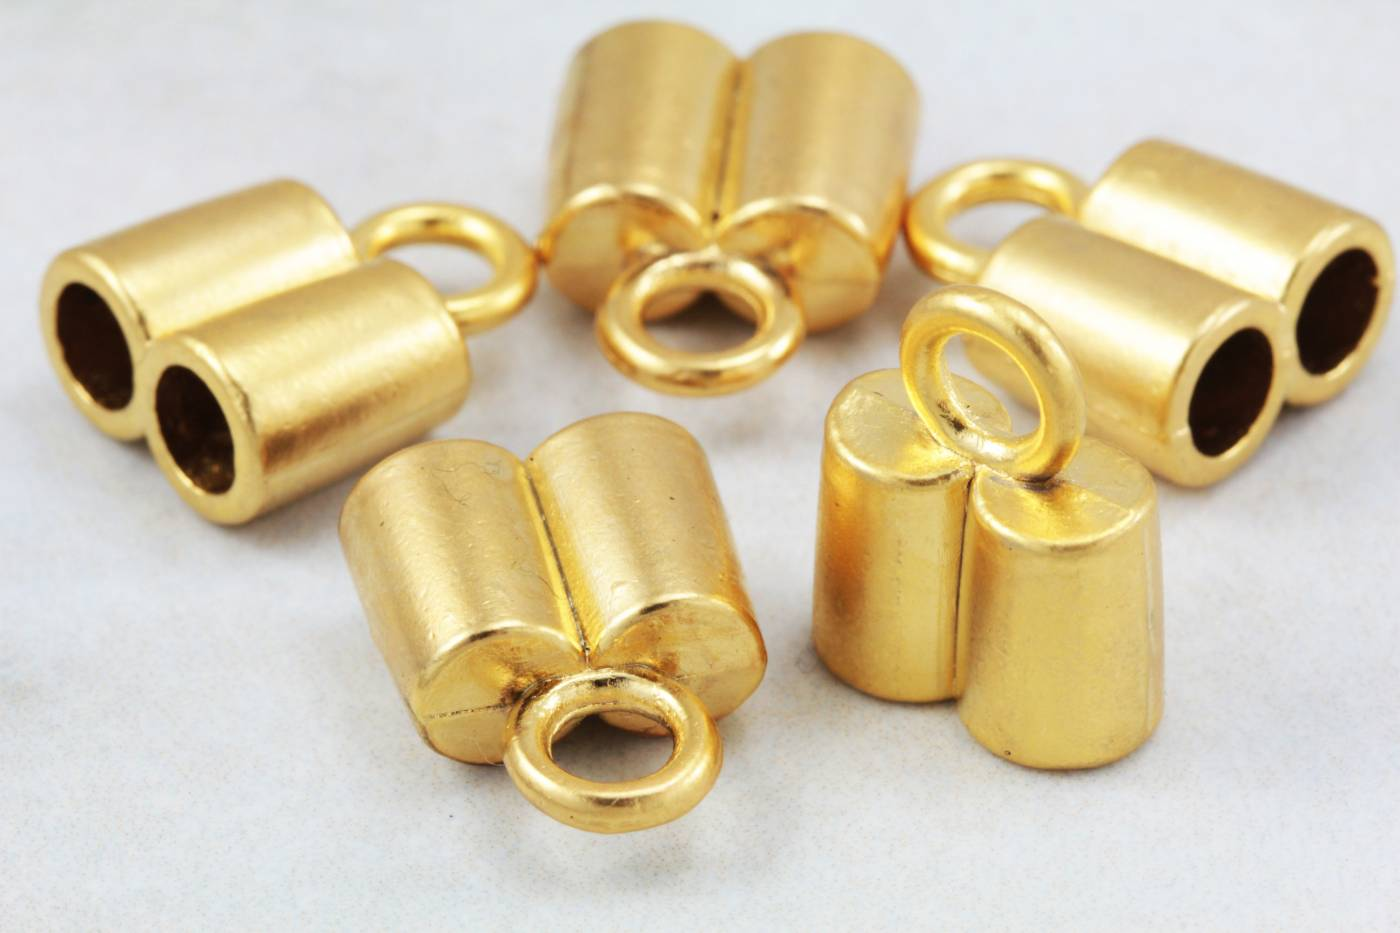 gold-plated-metal-double-hole-end-caps.jpg